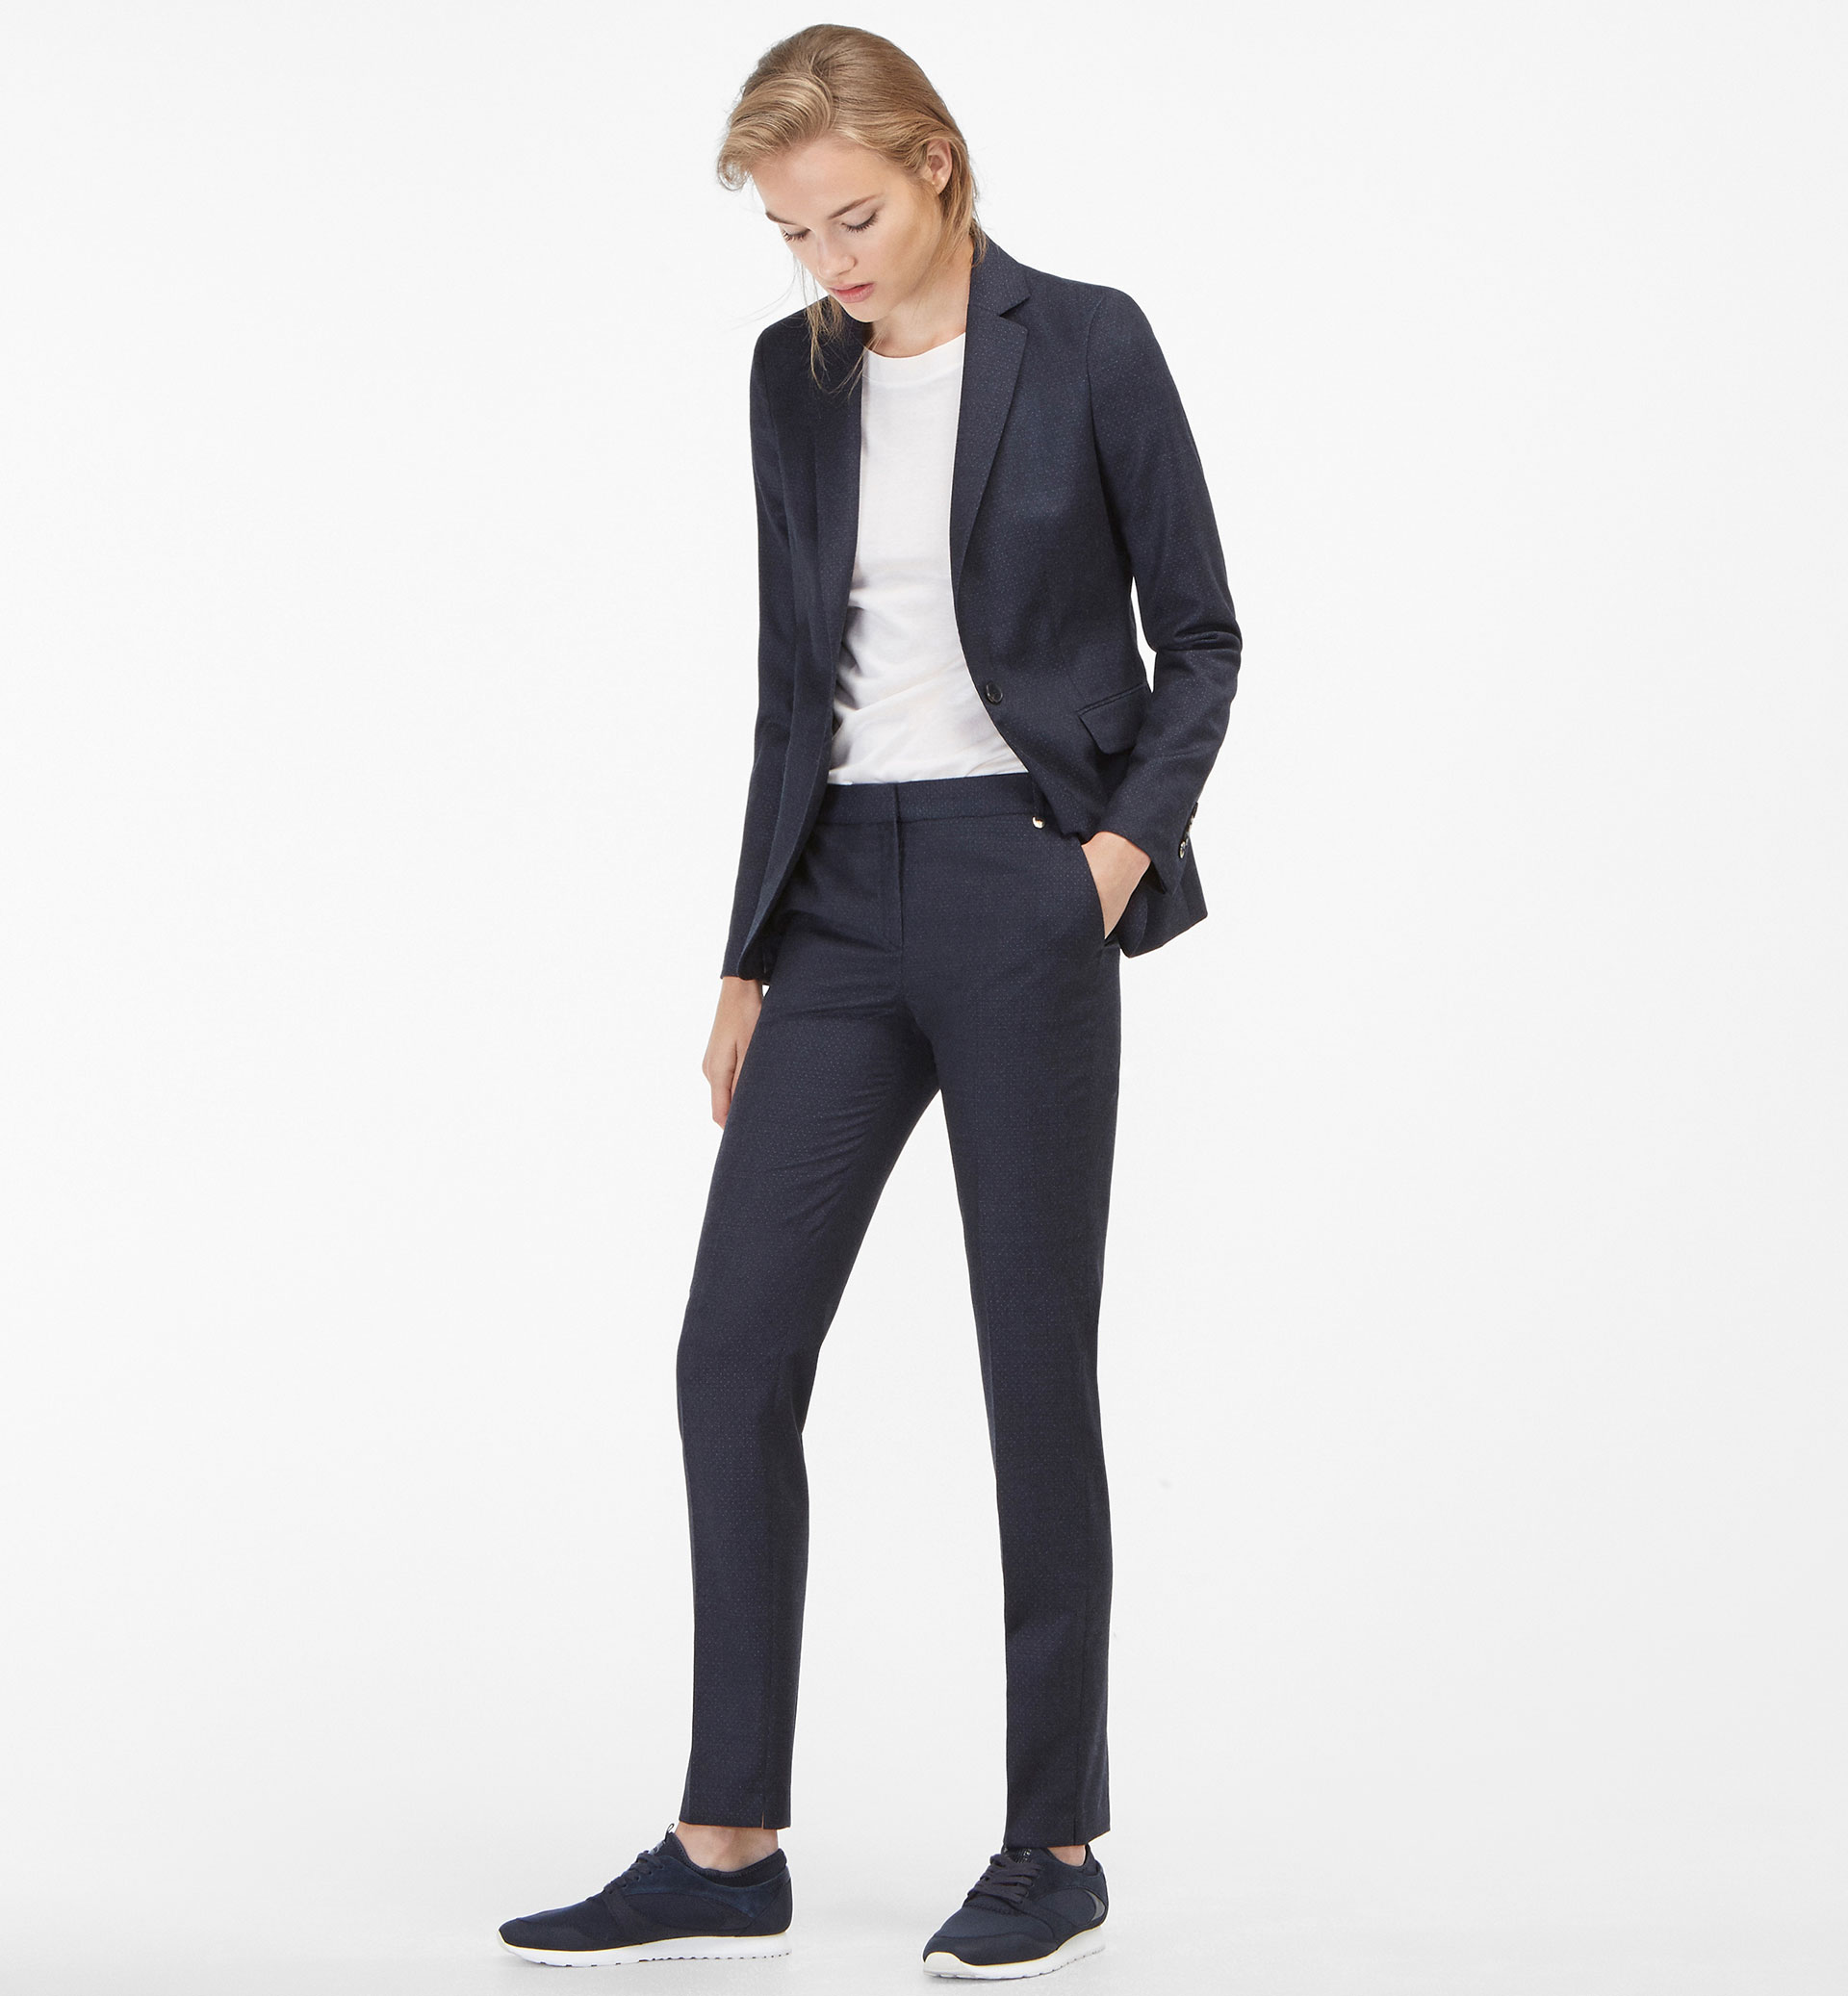 POLKA DOT SUIT TROUSERS